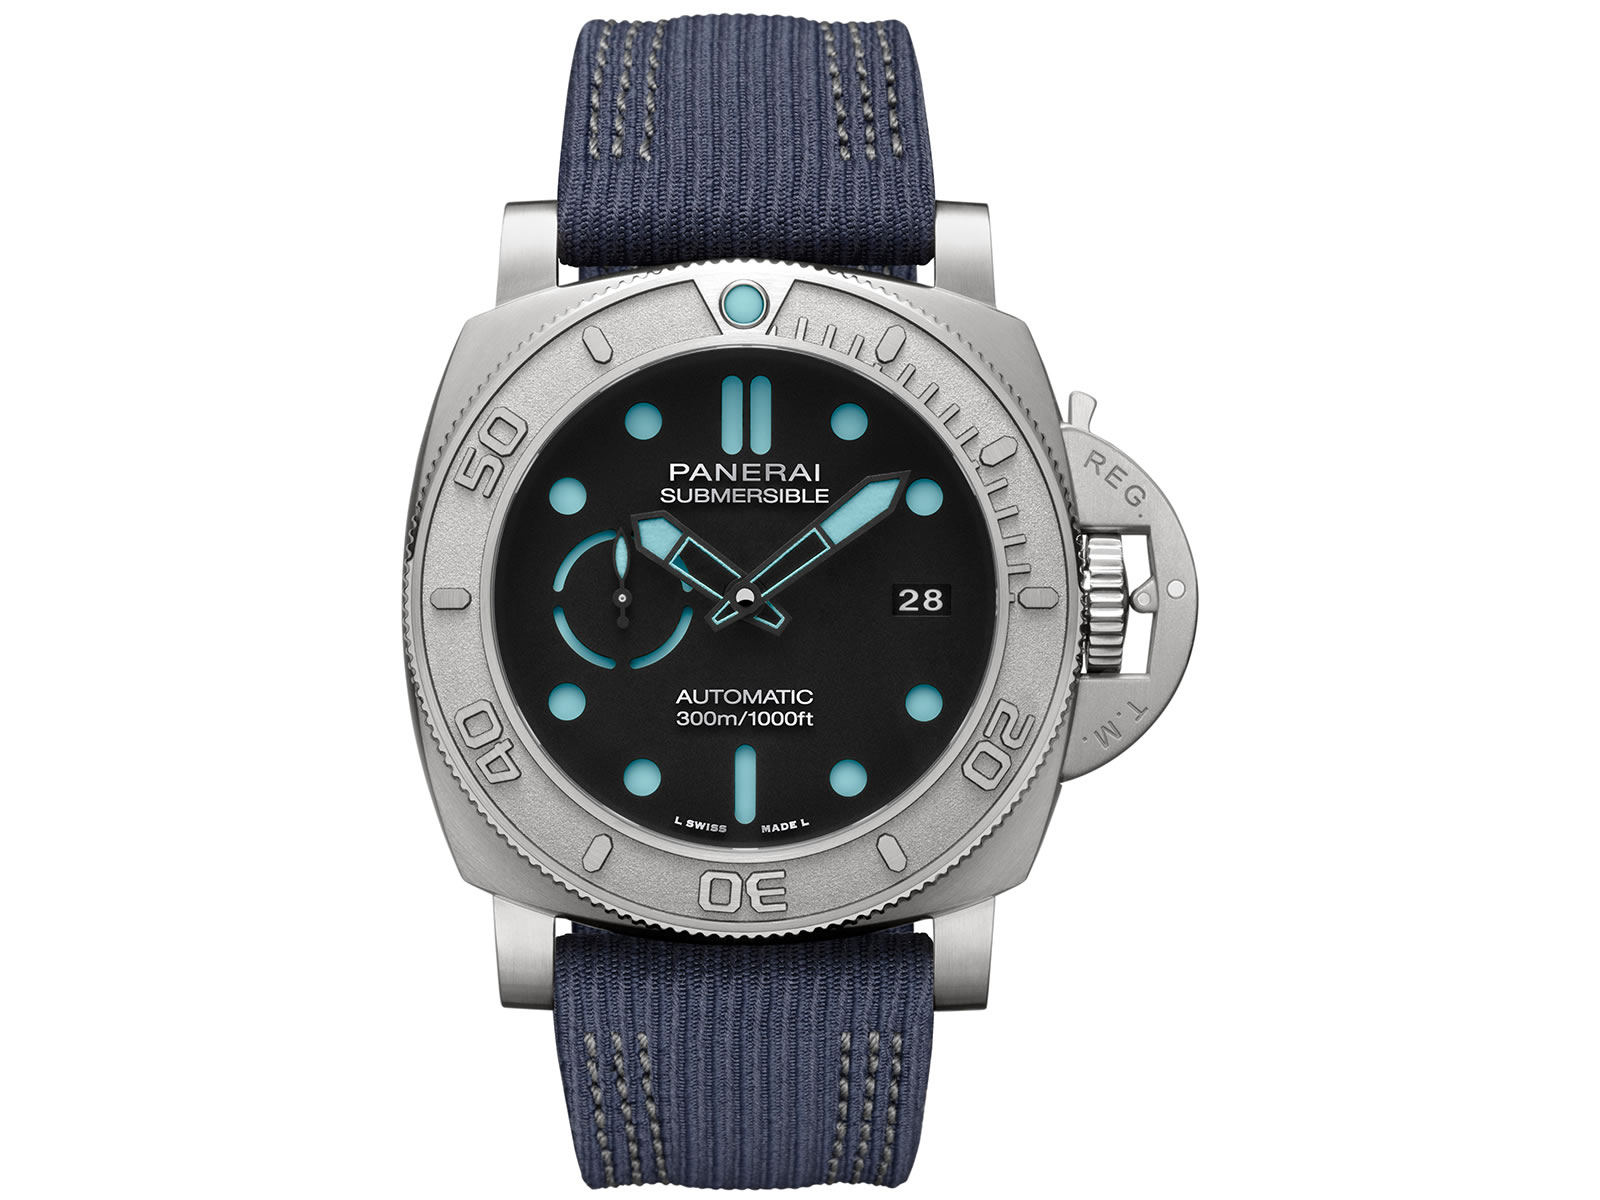 pam00985-officine-panerai-submersible-mike-horn-edition-47mm-5-.jpg